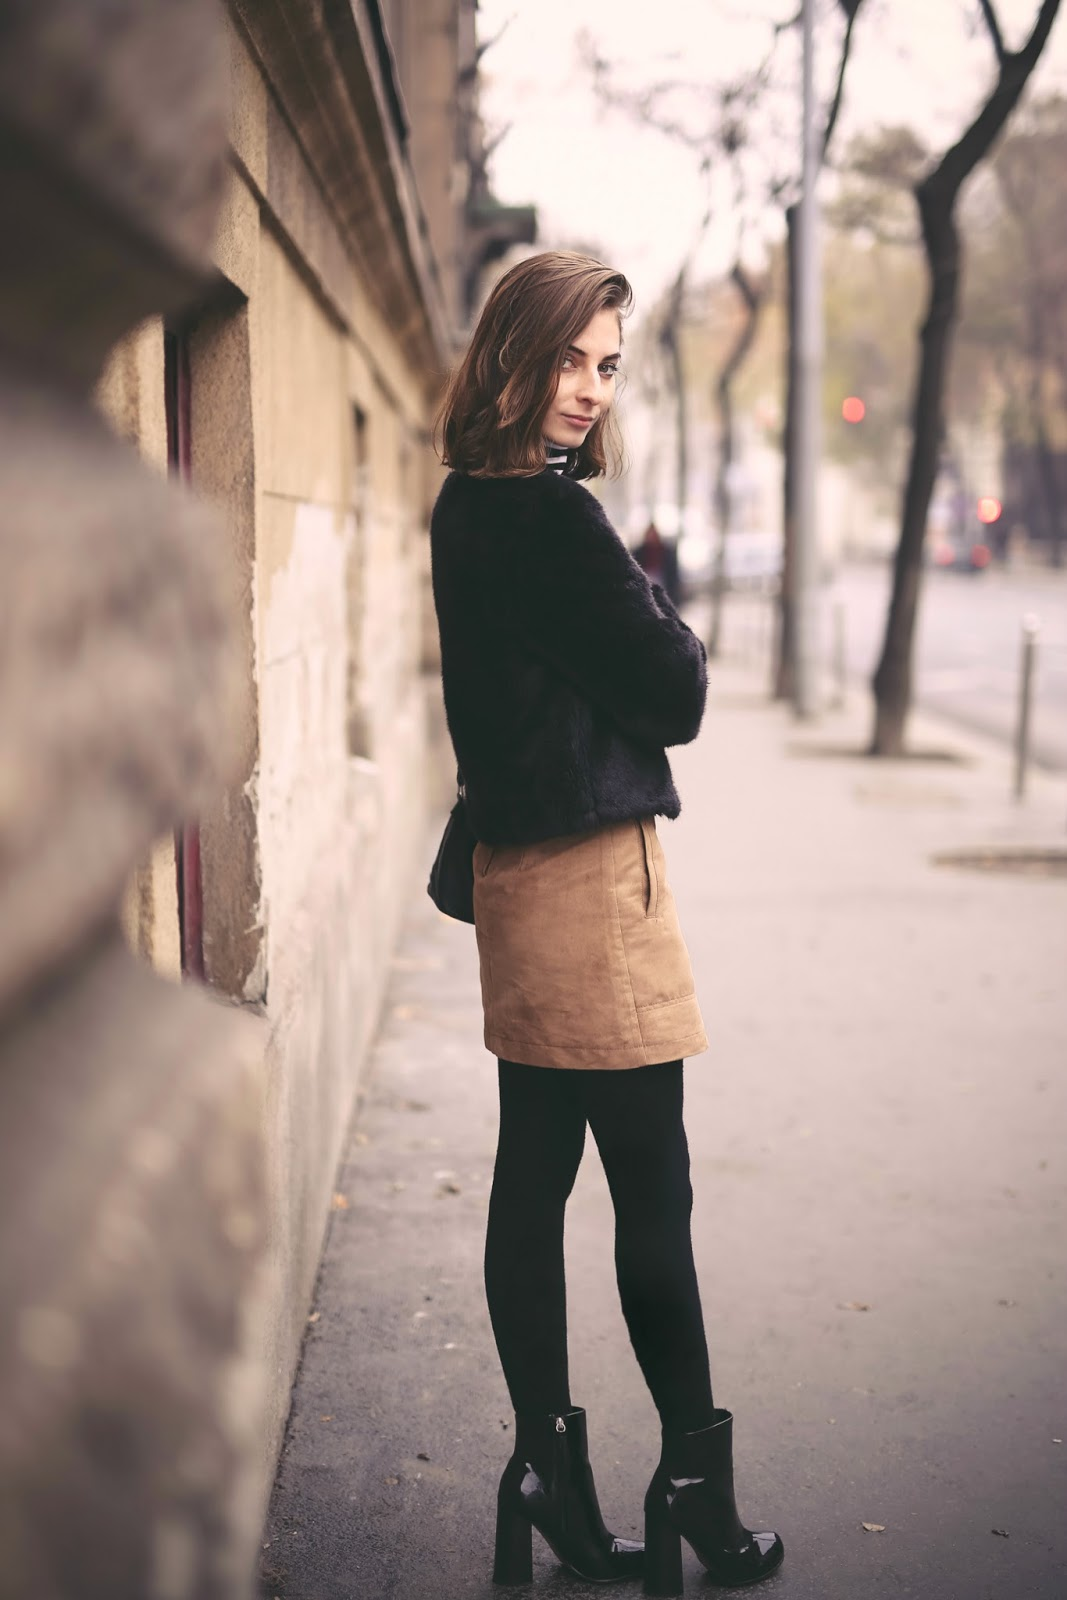 WEARING A BROWN A-LINE SKIRT & WITH A STRIPED TOP | What Vero Wears